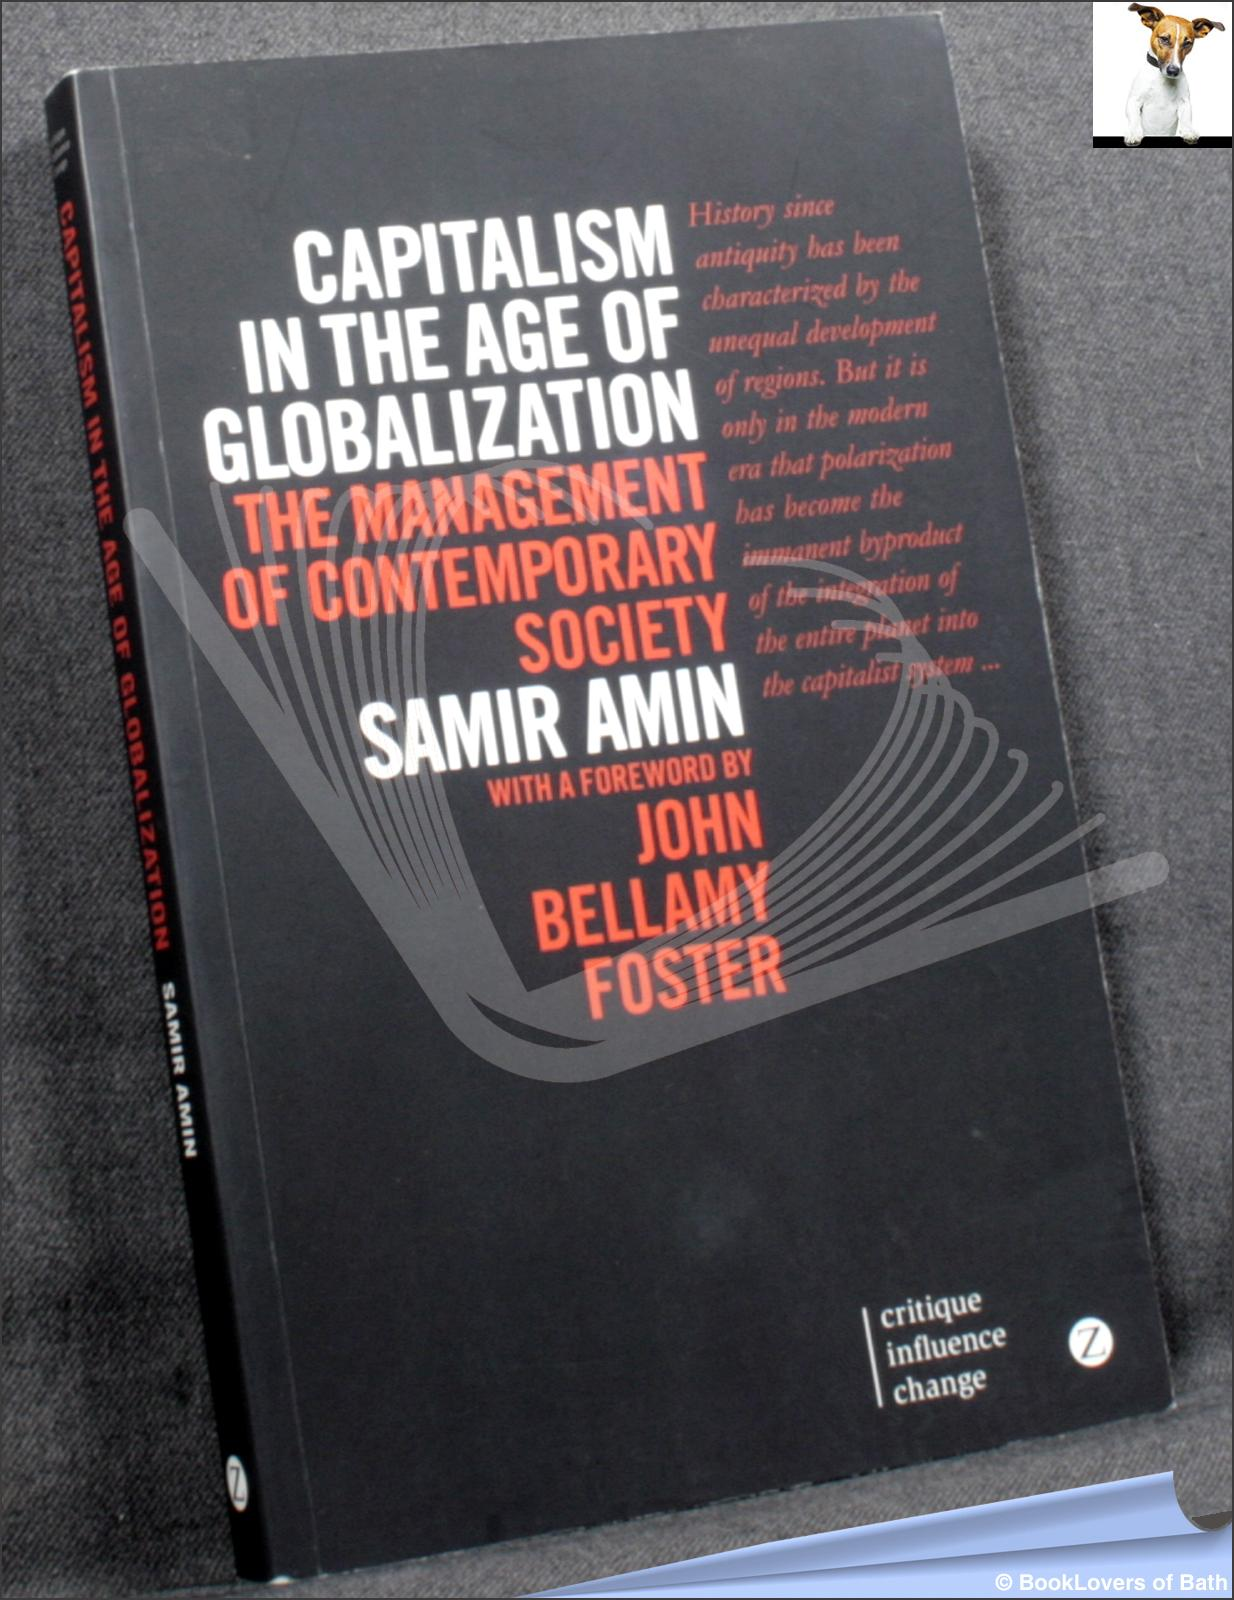 Capitalism in the Age of Globalization: The Management of Contemporary Society - Samir Amin